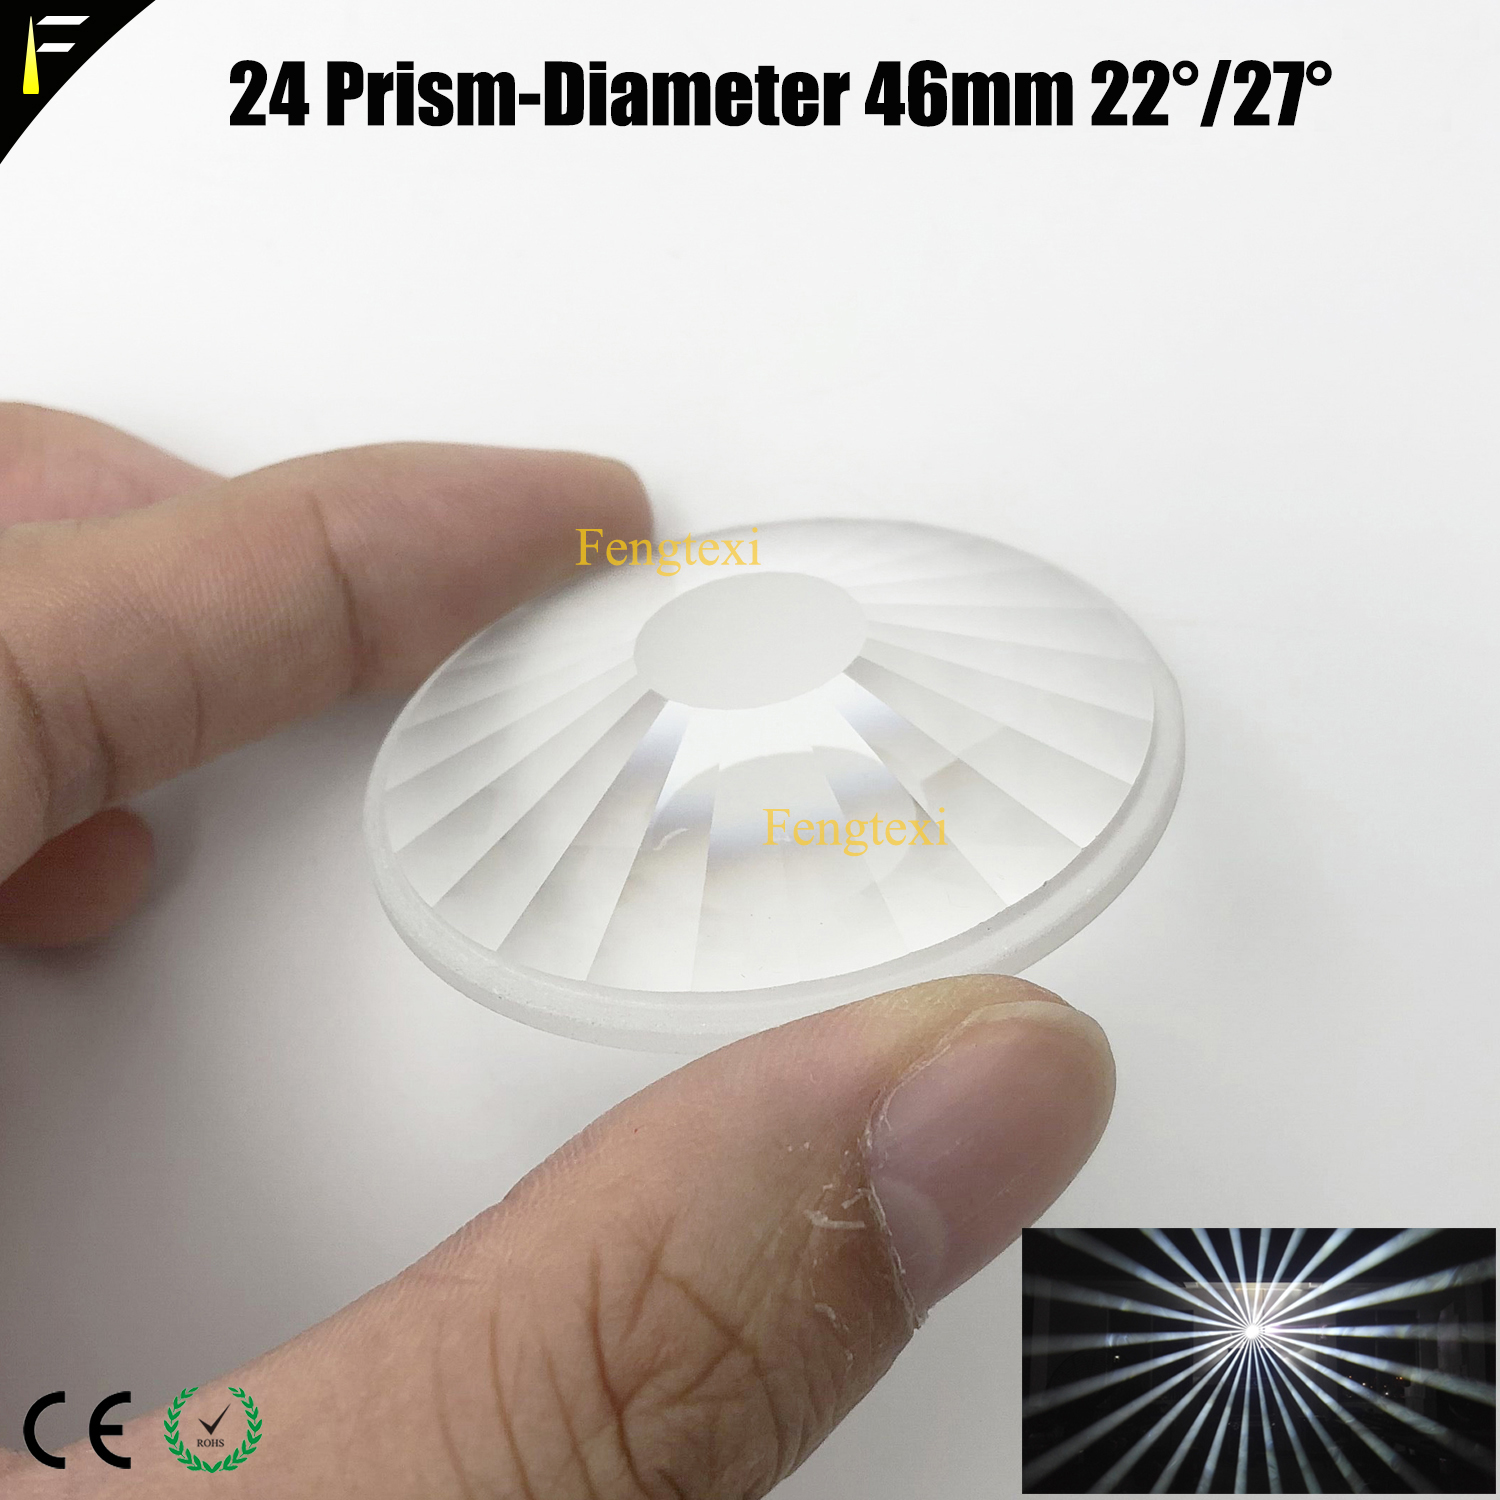 Diameter 46mm 200W230W Beam Light 16/24 Prism With 22 27 Degree Prism Beam Light General Big Angle Prism Spare Parts